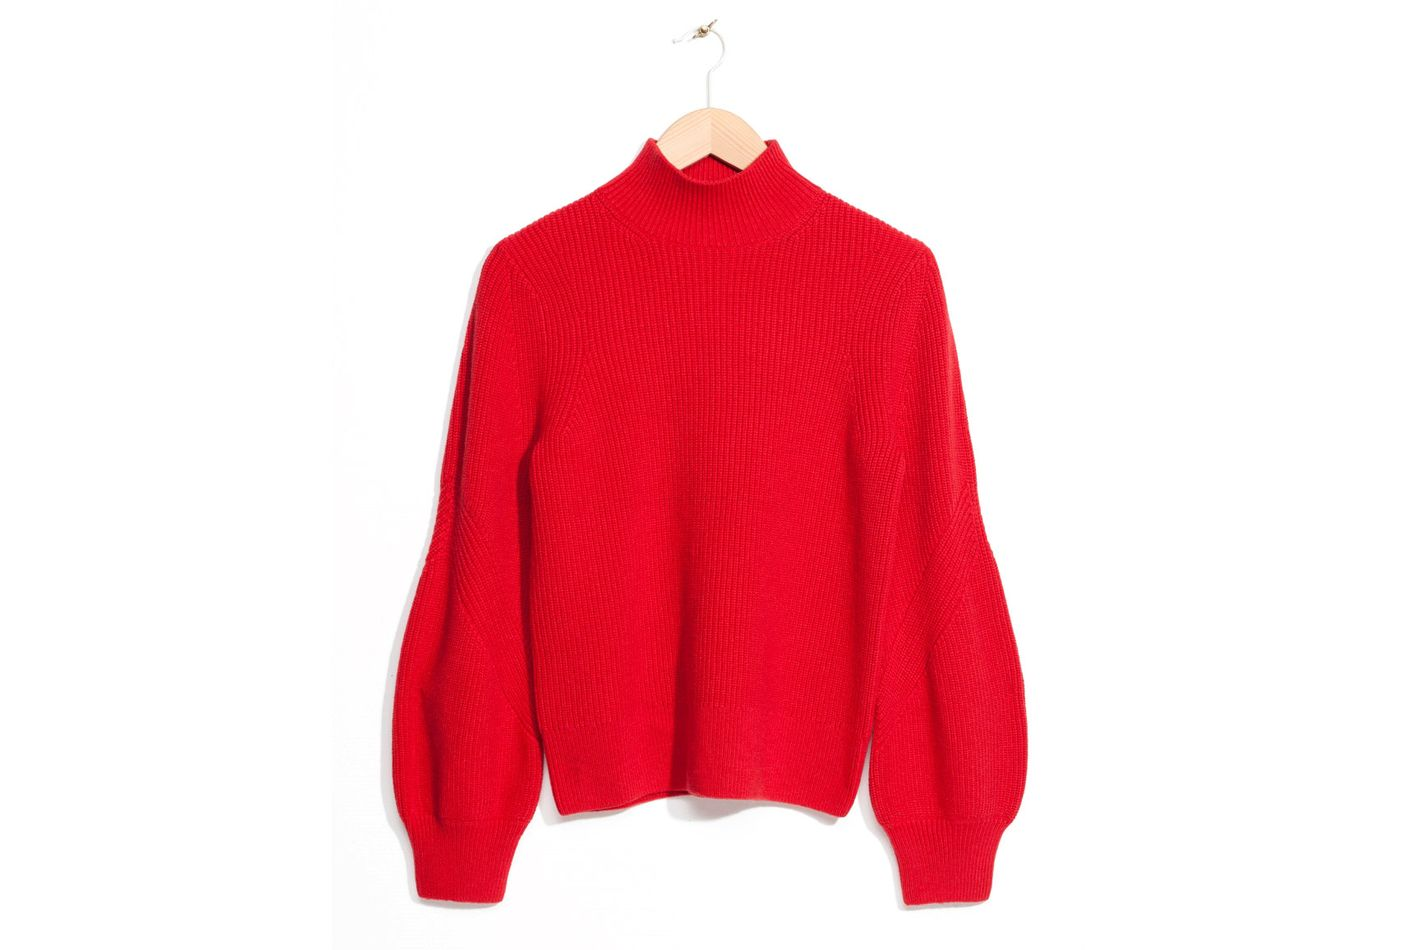 & Other Stories Puffy Sleeve Sweater